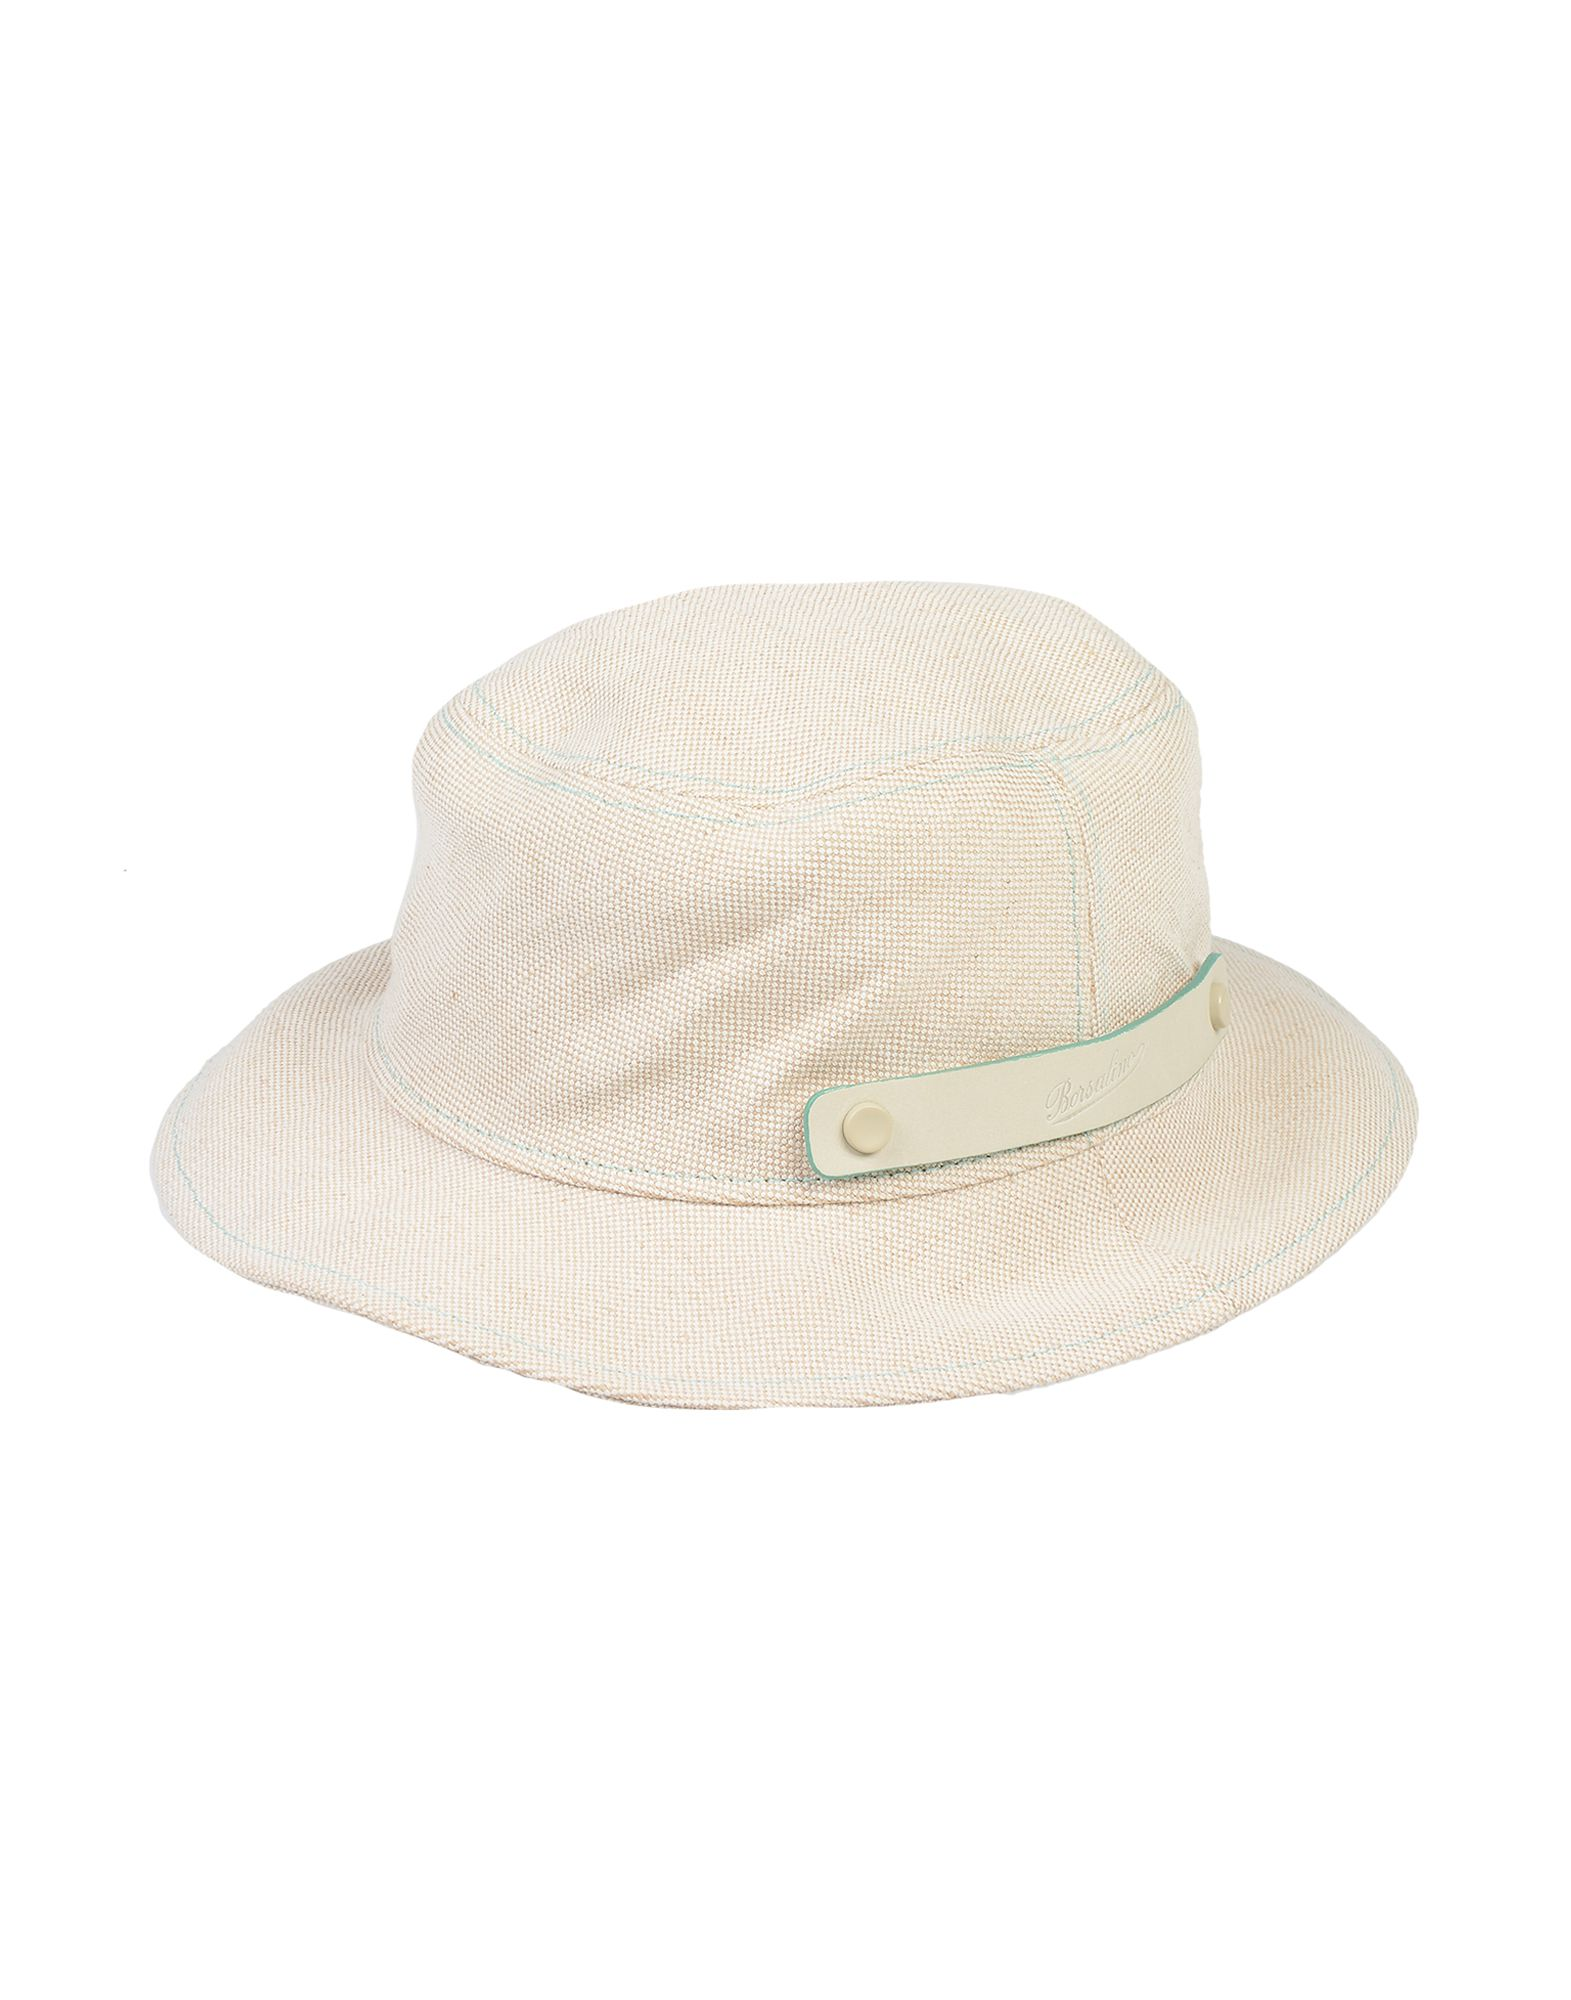 034043f52d79ed borsalino shop for women - women's borsalino catalogue - Cools.com